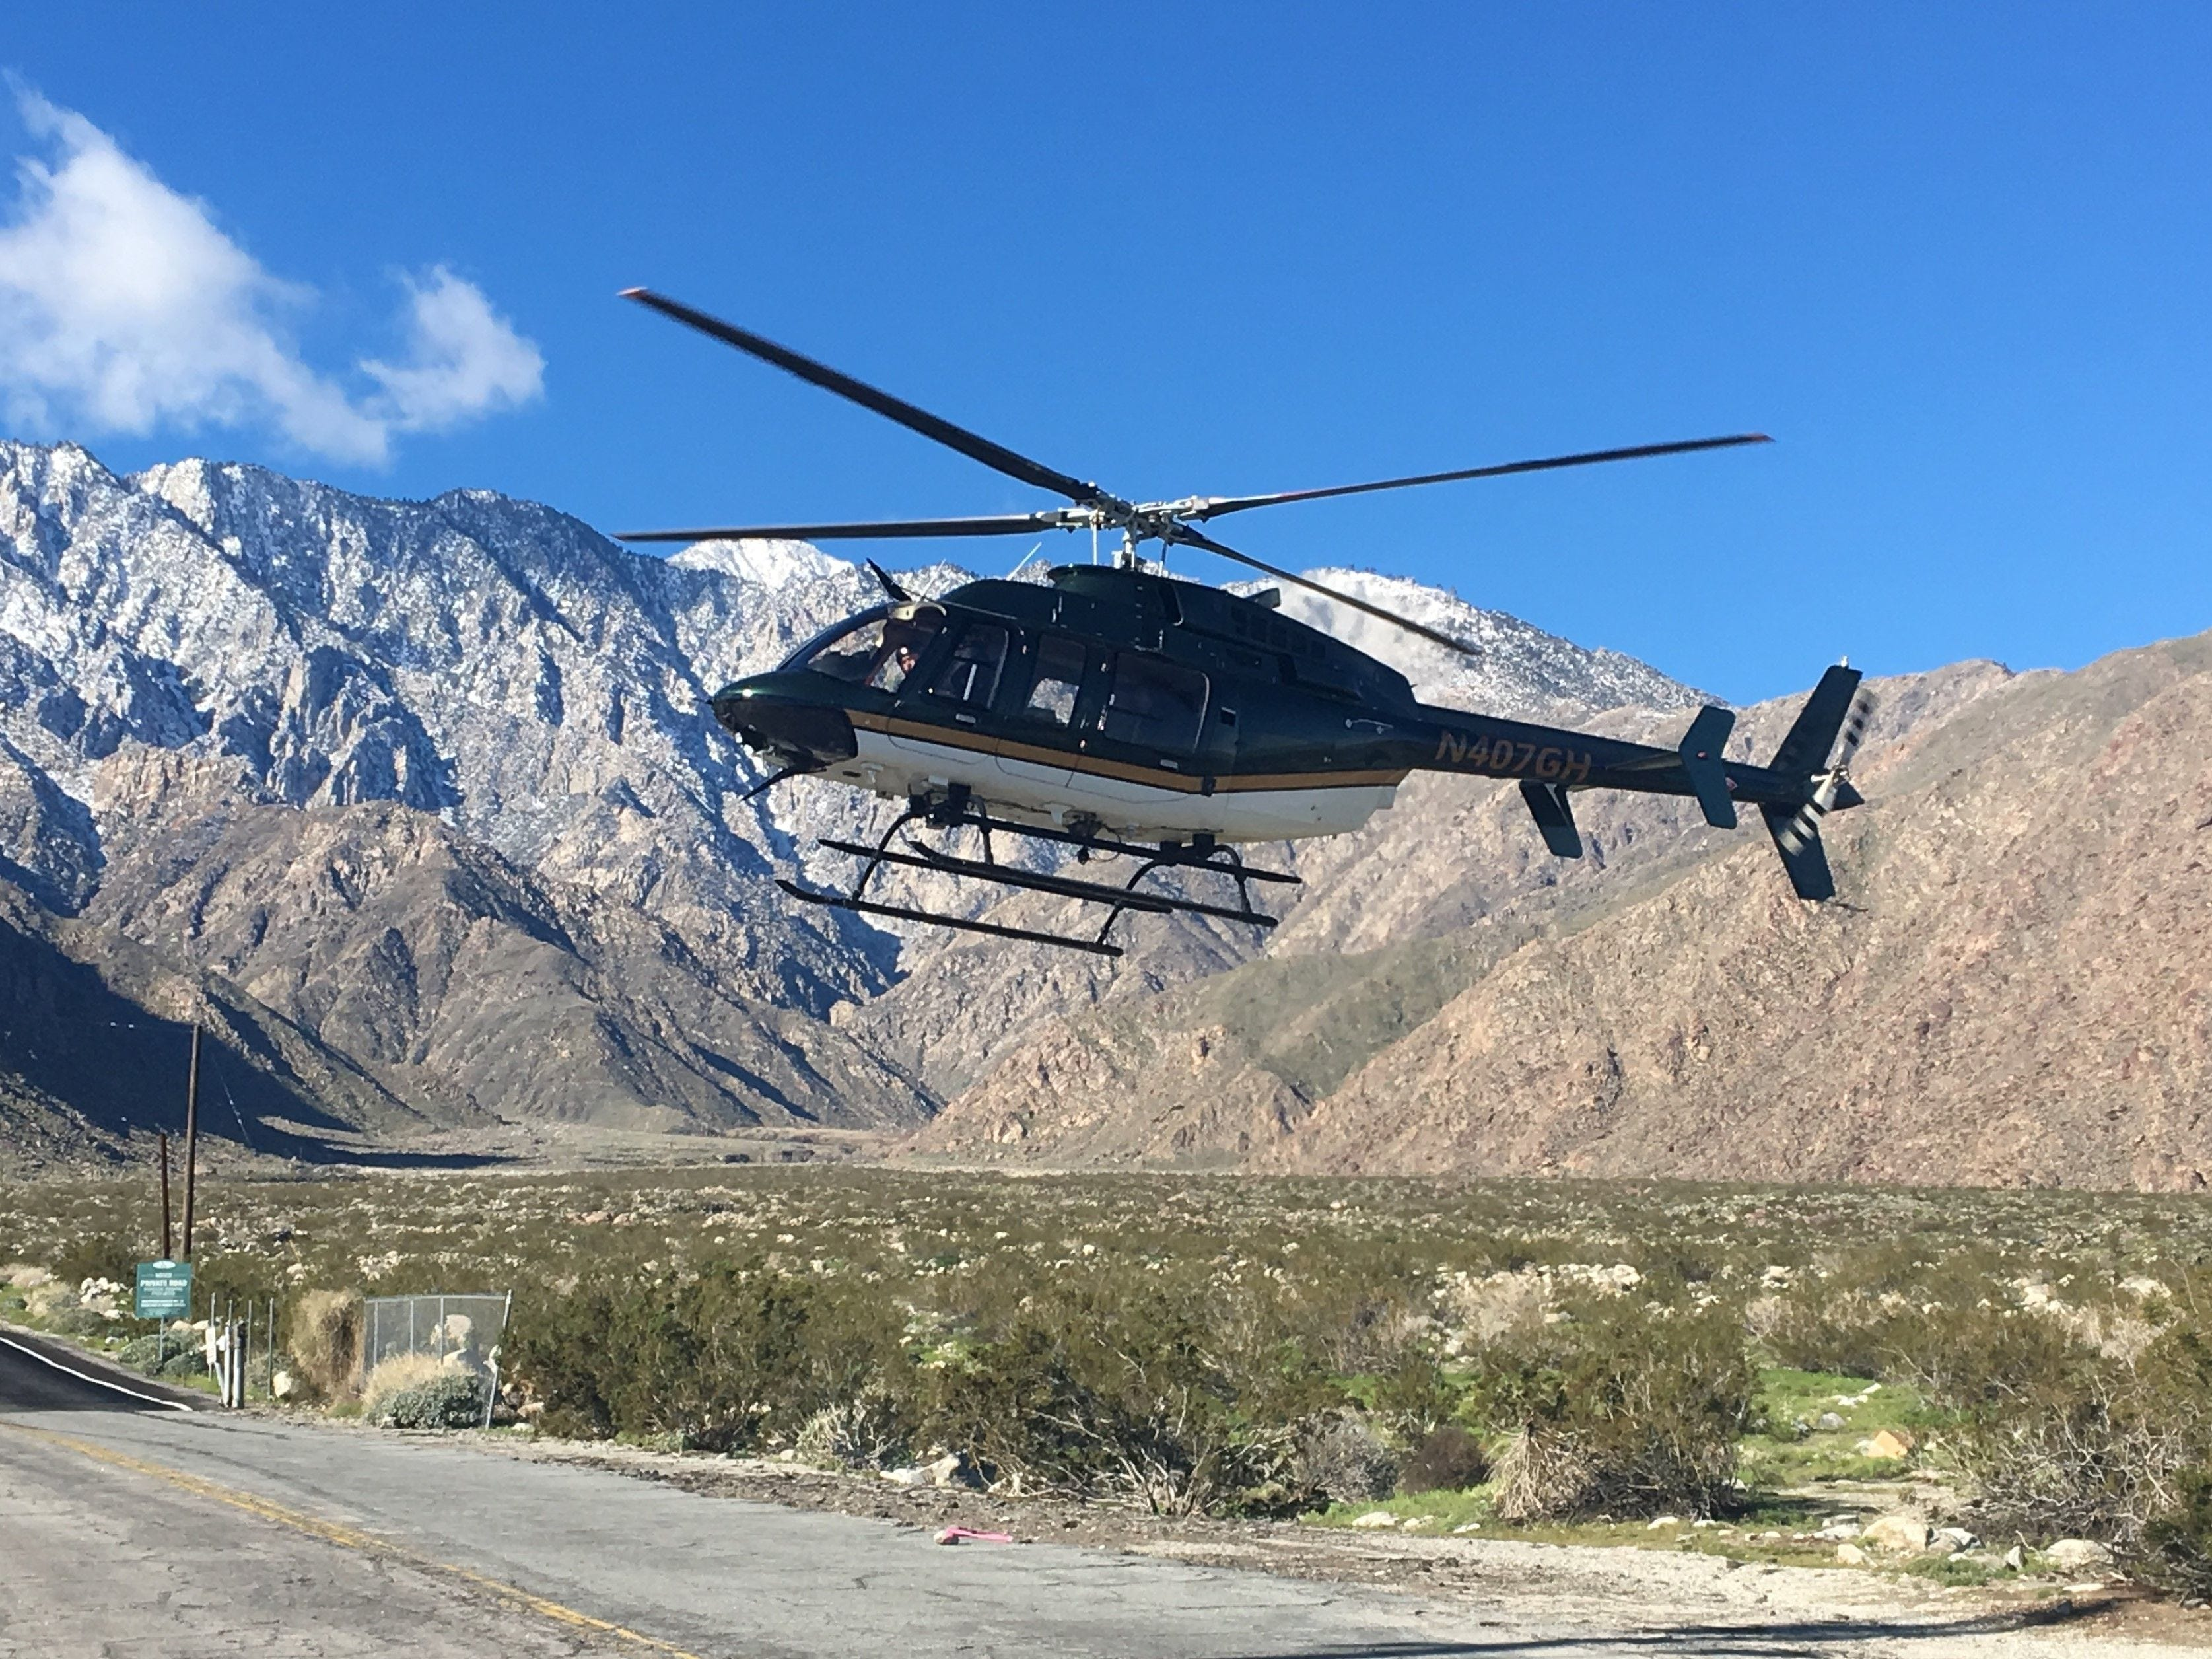 A helicopter airlifts staff to the Palm Springs Aerial Tramway station in February 2019 after a storm damaged the road to the tourist attraction.